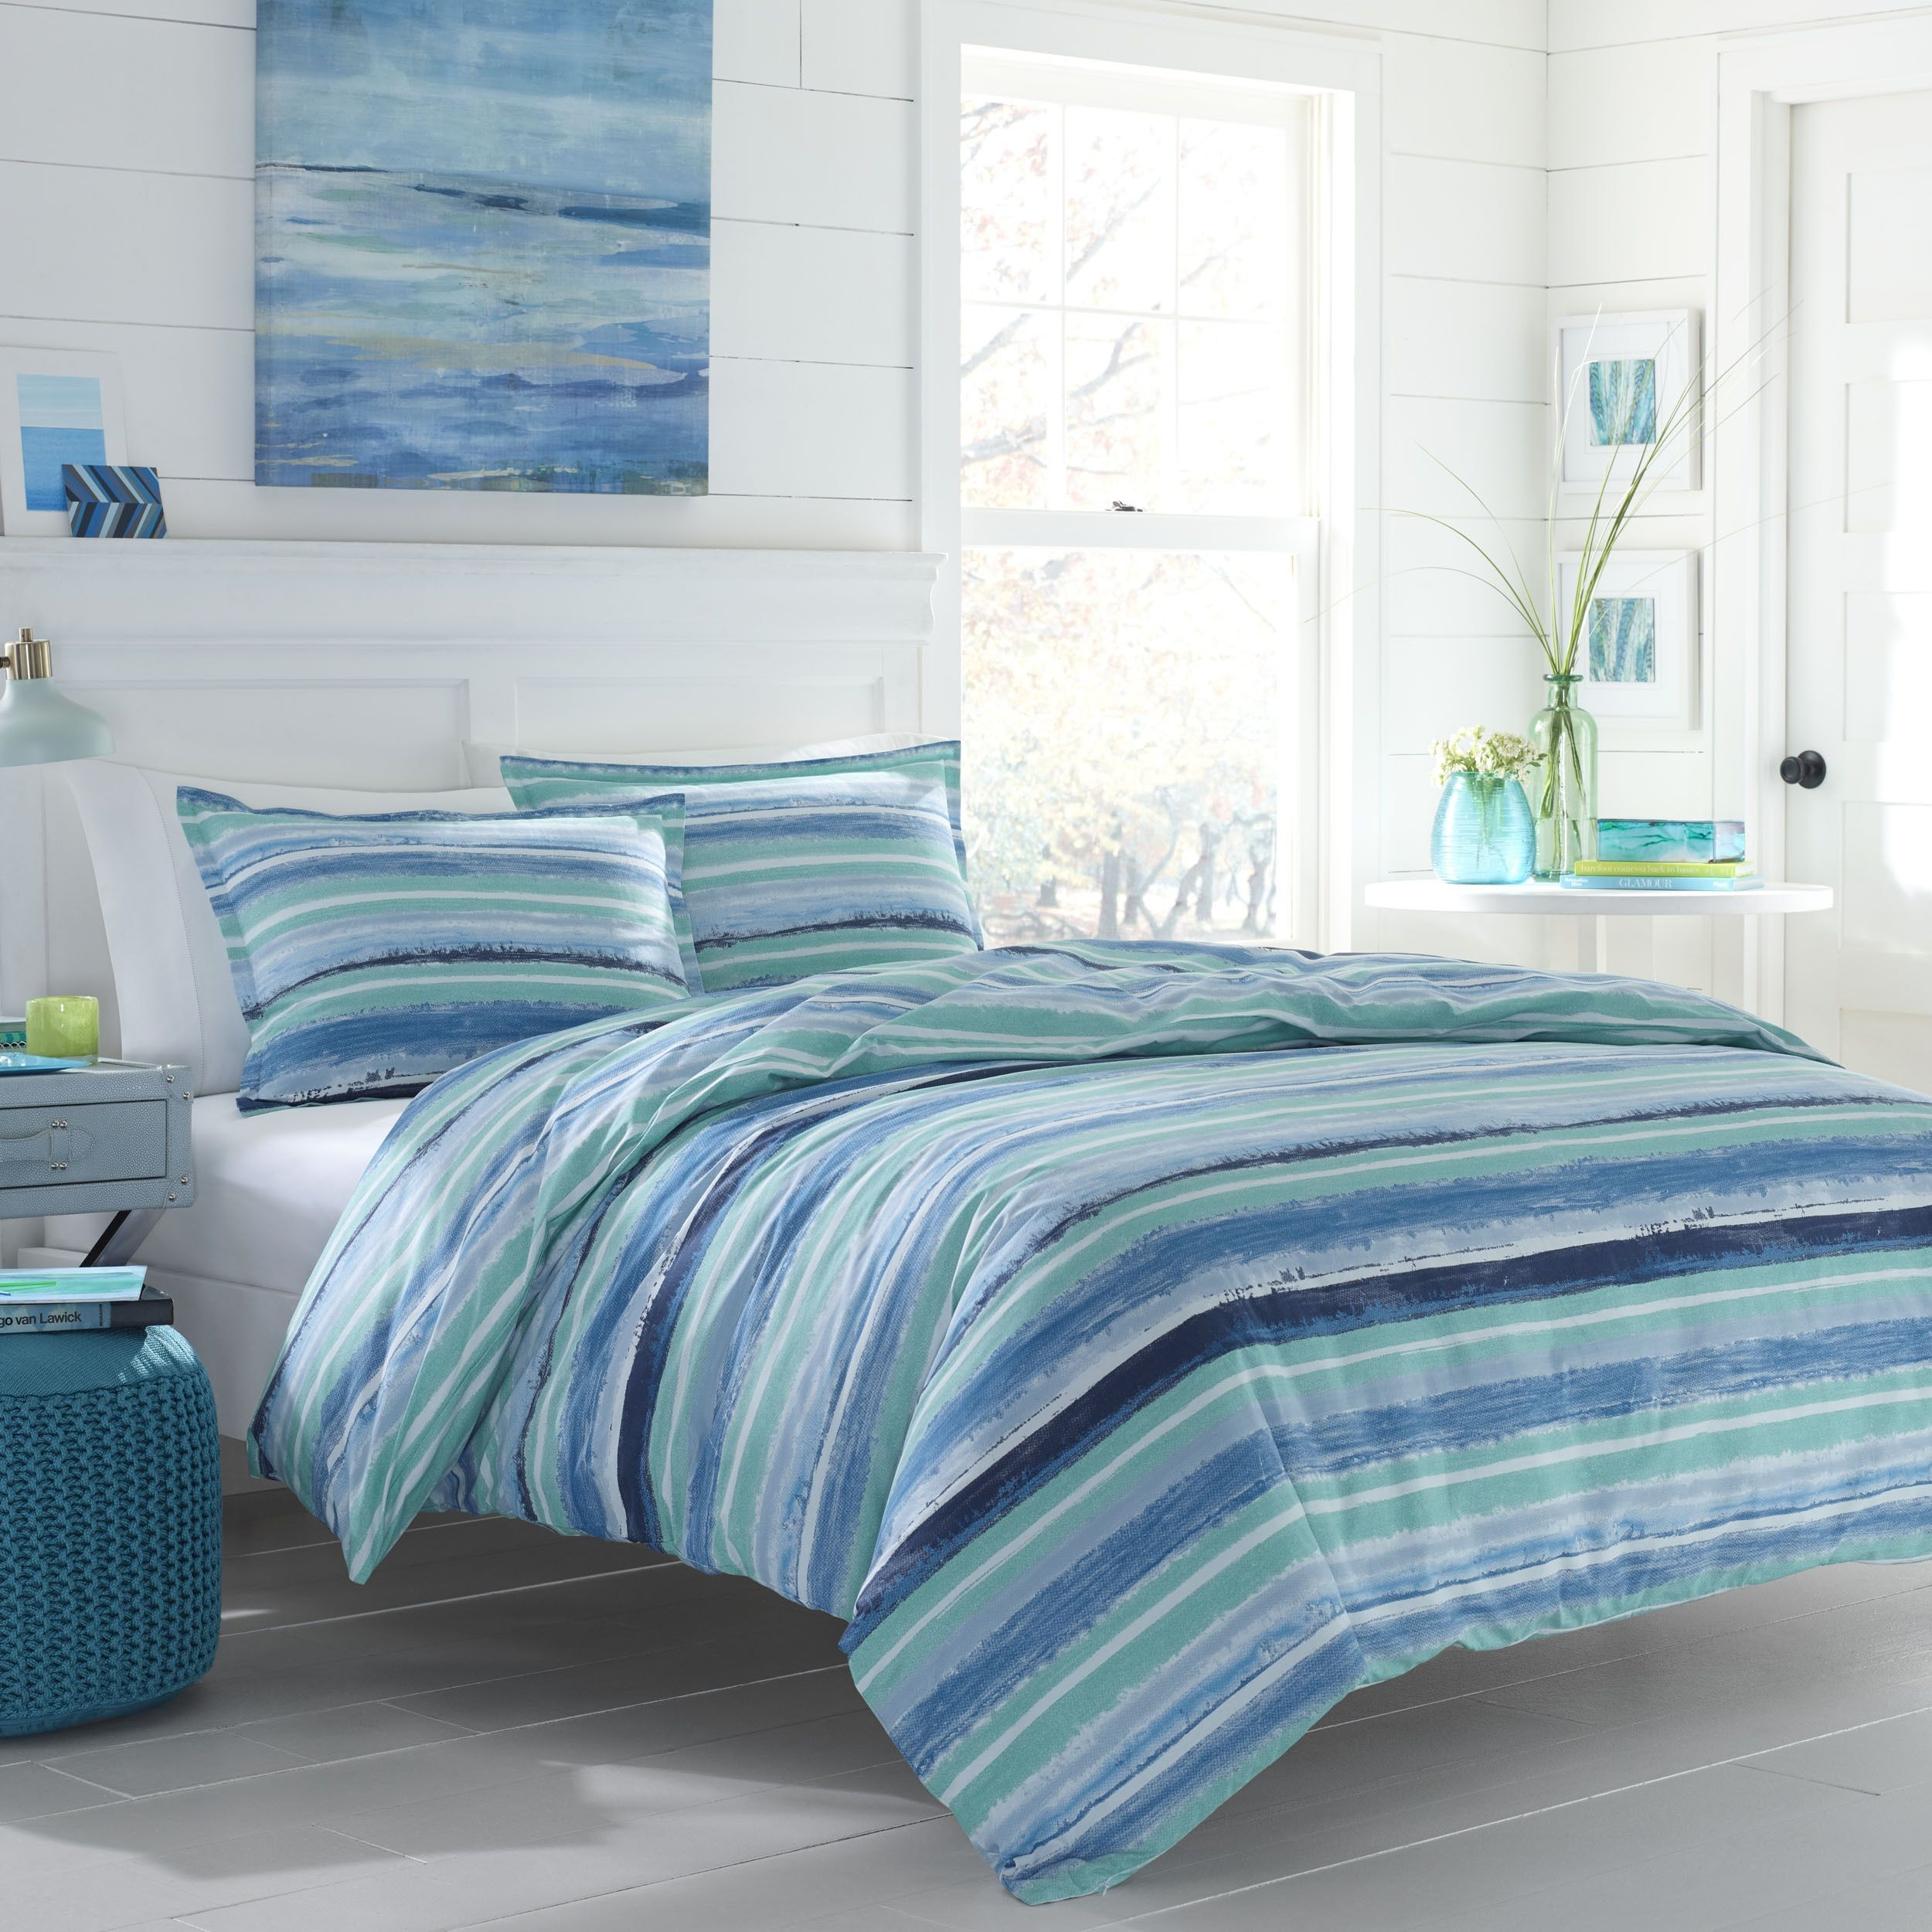 pin a and features multicolored duvet to the of covers reverses set comforter lighthouses sailboats nautical theme